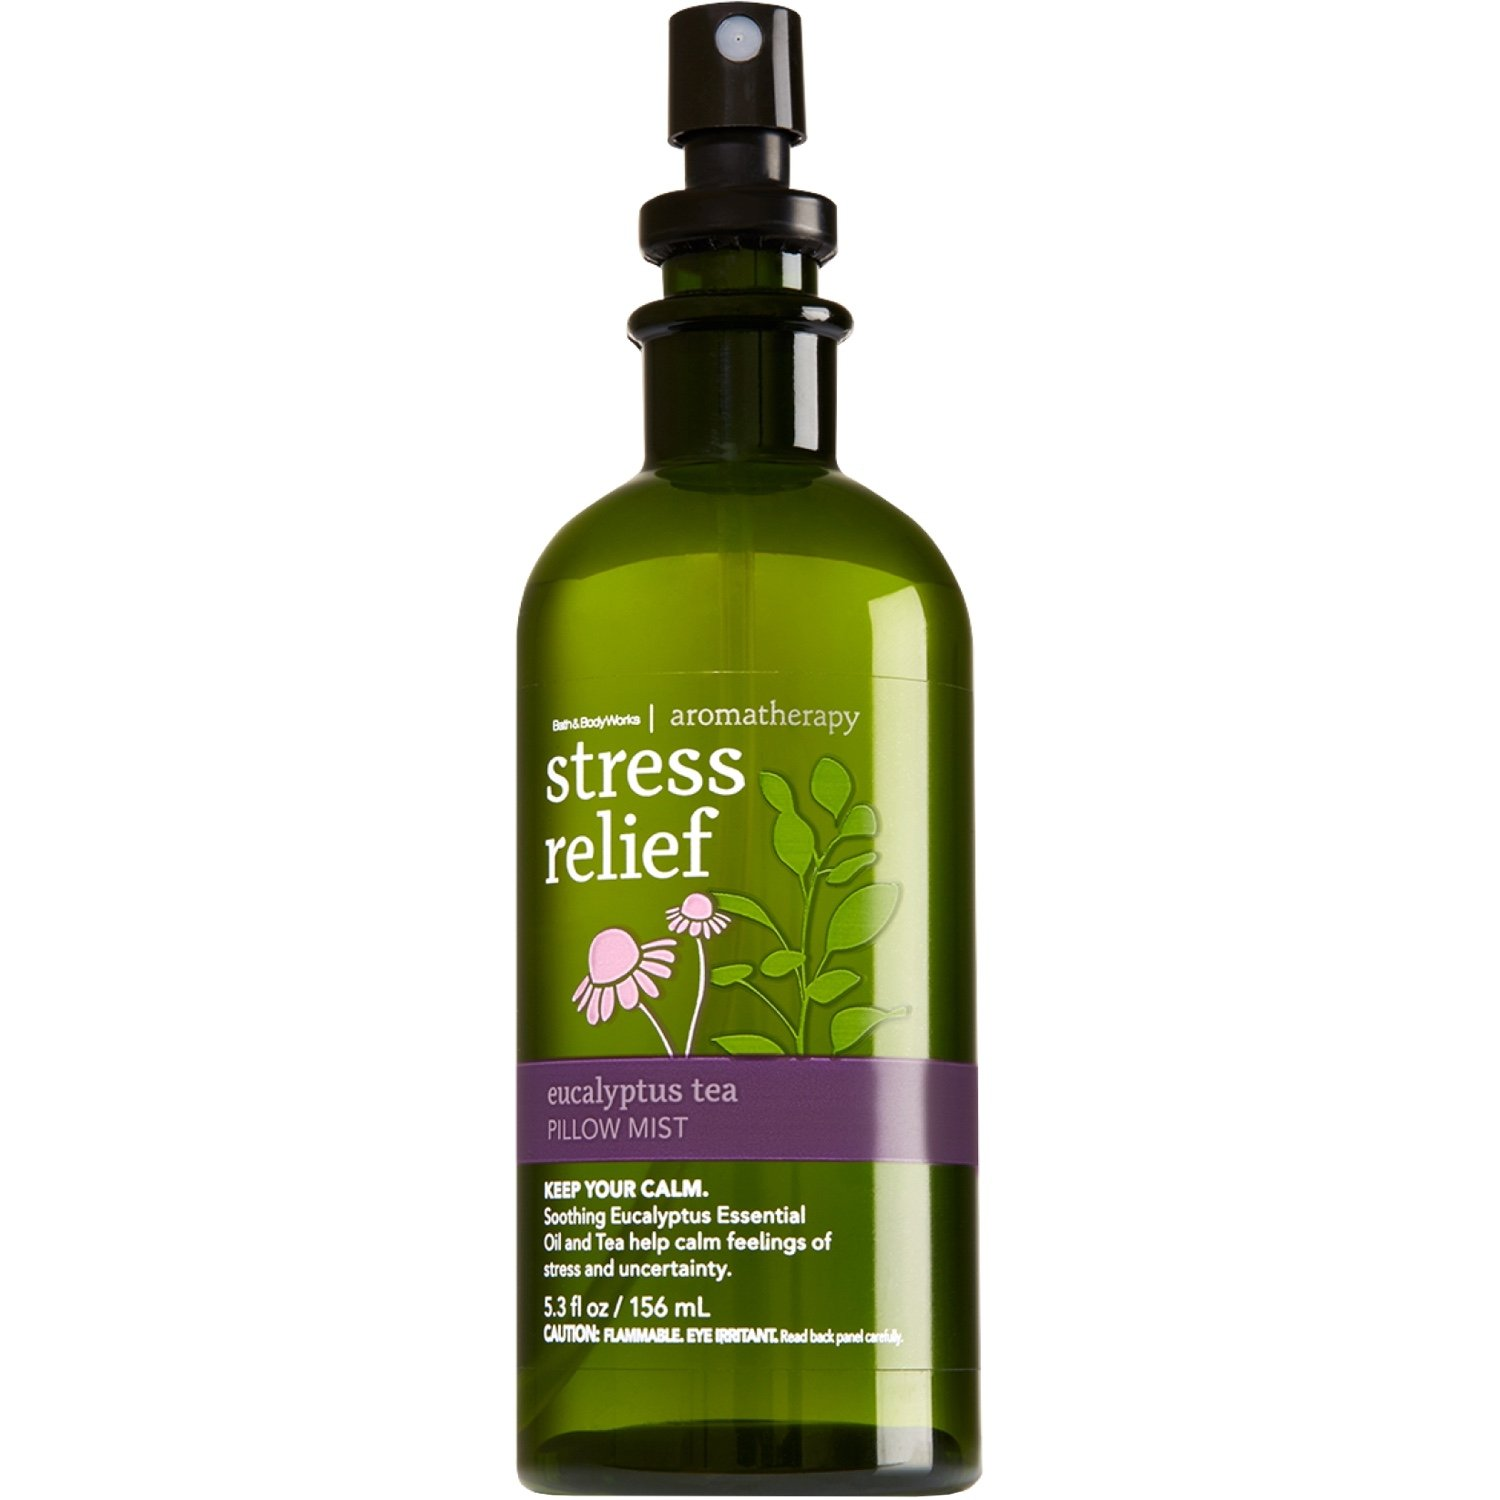 Bath & Body Works Aromatherapy Focus - Eucalyptus & Tea Pillow Mist, 5.3 Fl Oz (Packaging May Vary)